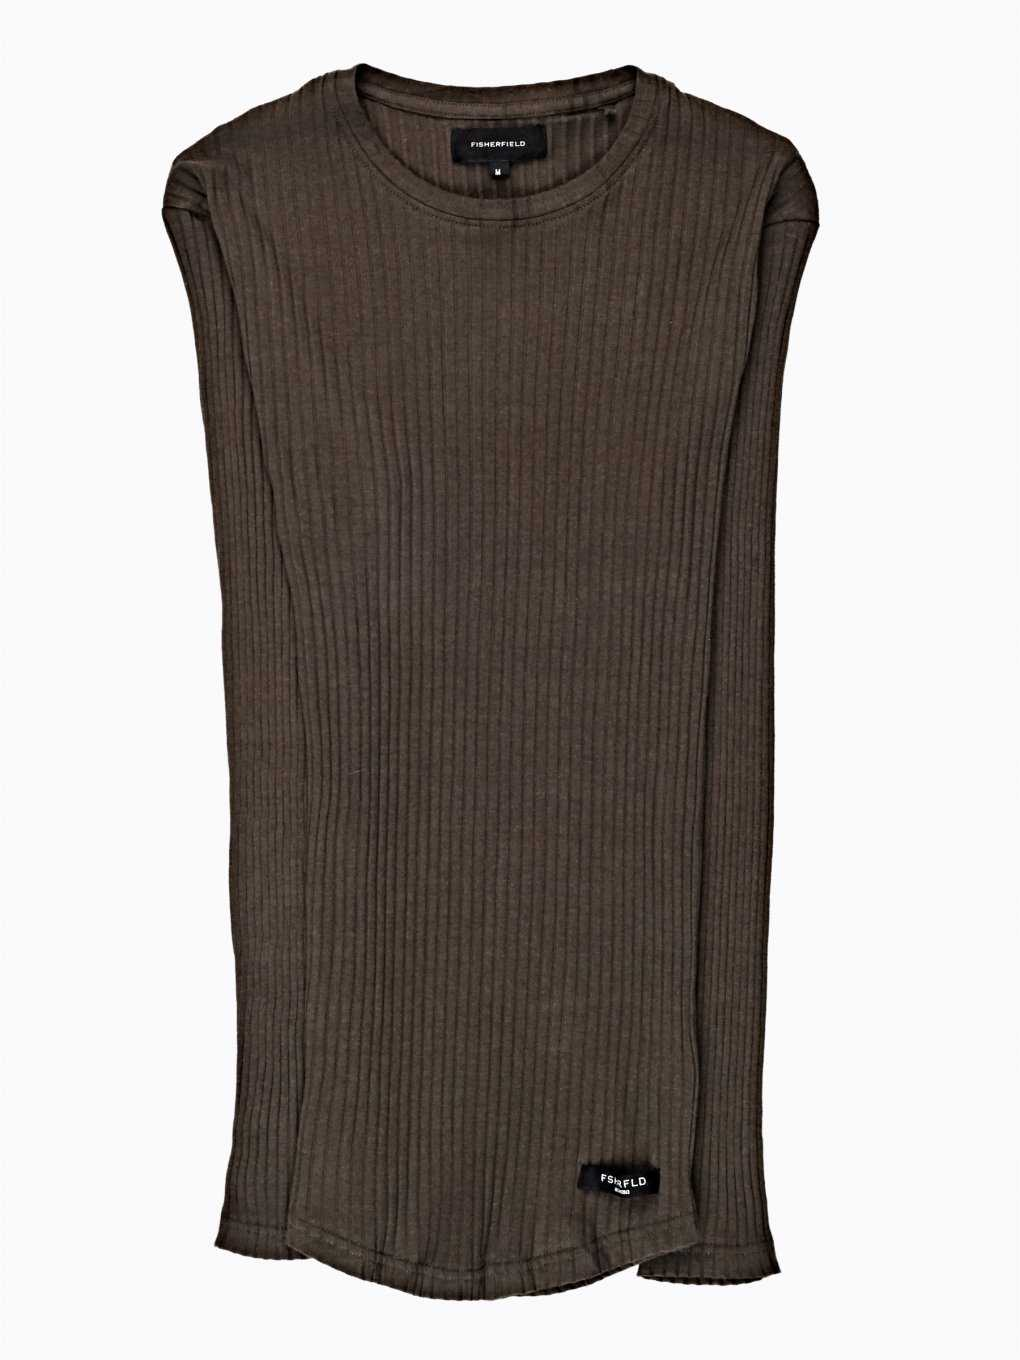 BASIC RIB-KNIT SLIM FIT T-SHIRT